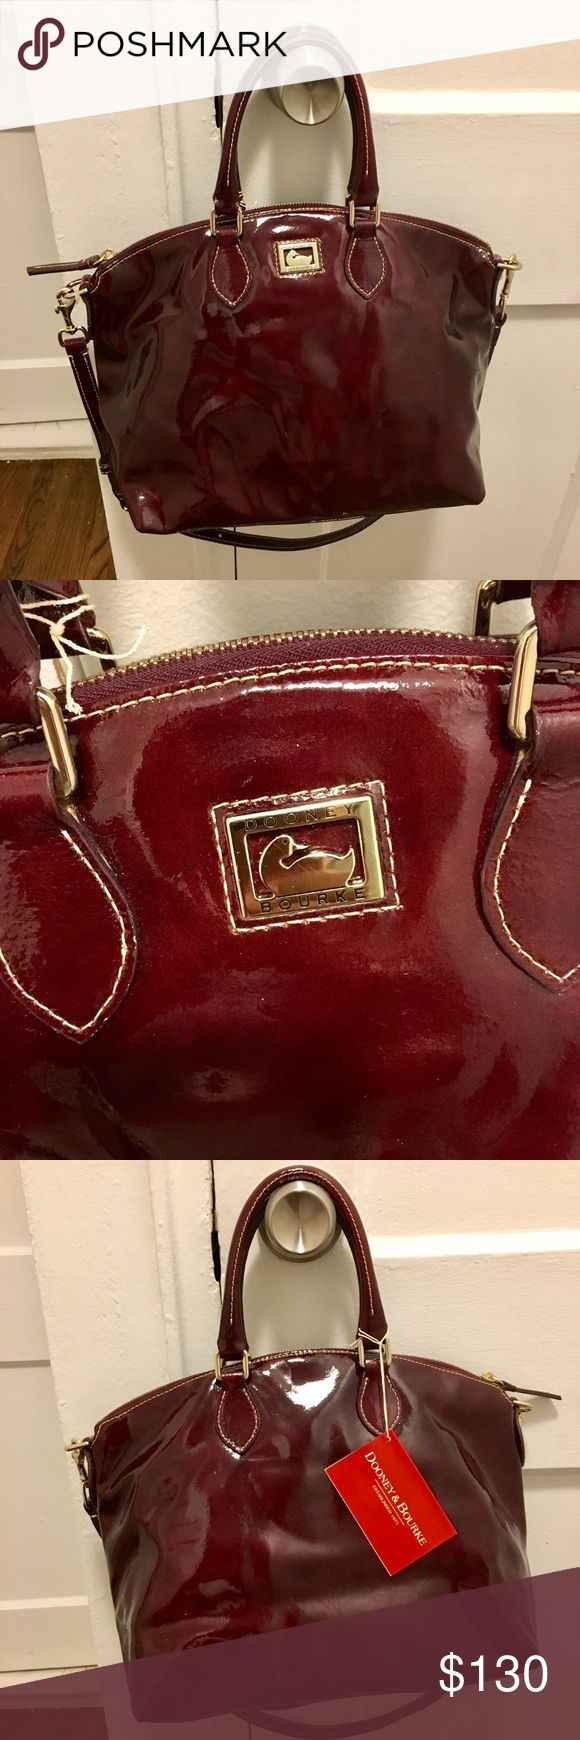 """Dooney and Bourke Patent Leather Satche NWT Dooney and Bourke Patent Leather Satchel in Bordeaux. Features: beautiful smooth patent wine colored leather, zip closure, silvertone hardware. Interior is fully lined, has 4 multipurpose pockets and a one key clip. Bag measures approx. 14"""" L x 10.5"""" H x 6"""" W. Handle drops to approx. 5"""" L. Adjustable strap measures approx. 31"""" L. Bag is new, unused. No dust bag or box. Comes with its registration card.  Has a few small scratches (highlighted in the…"""